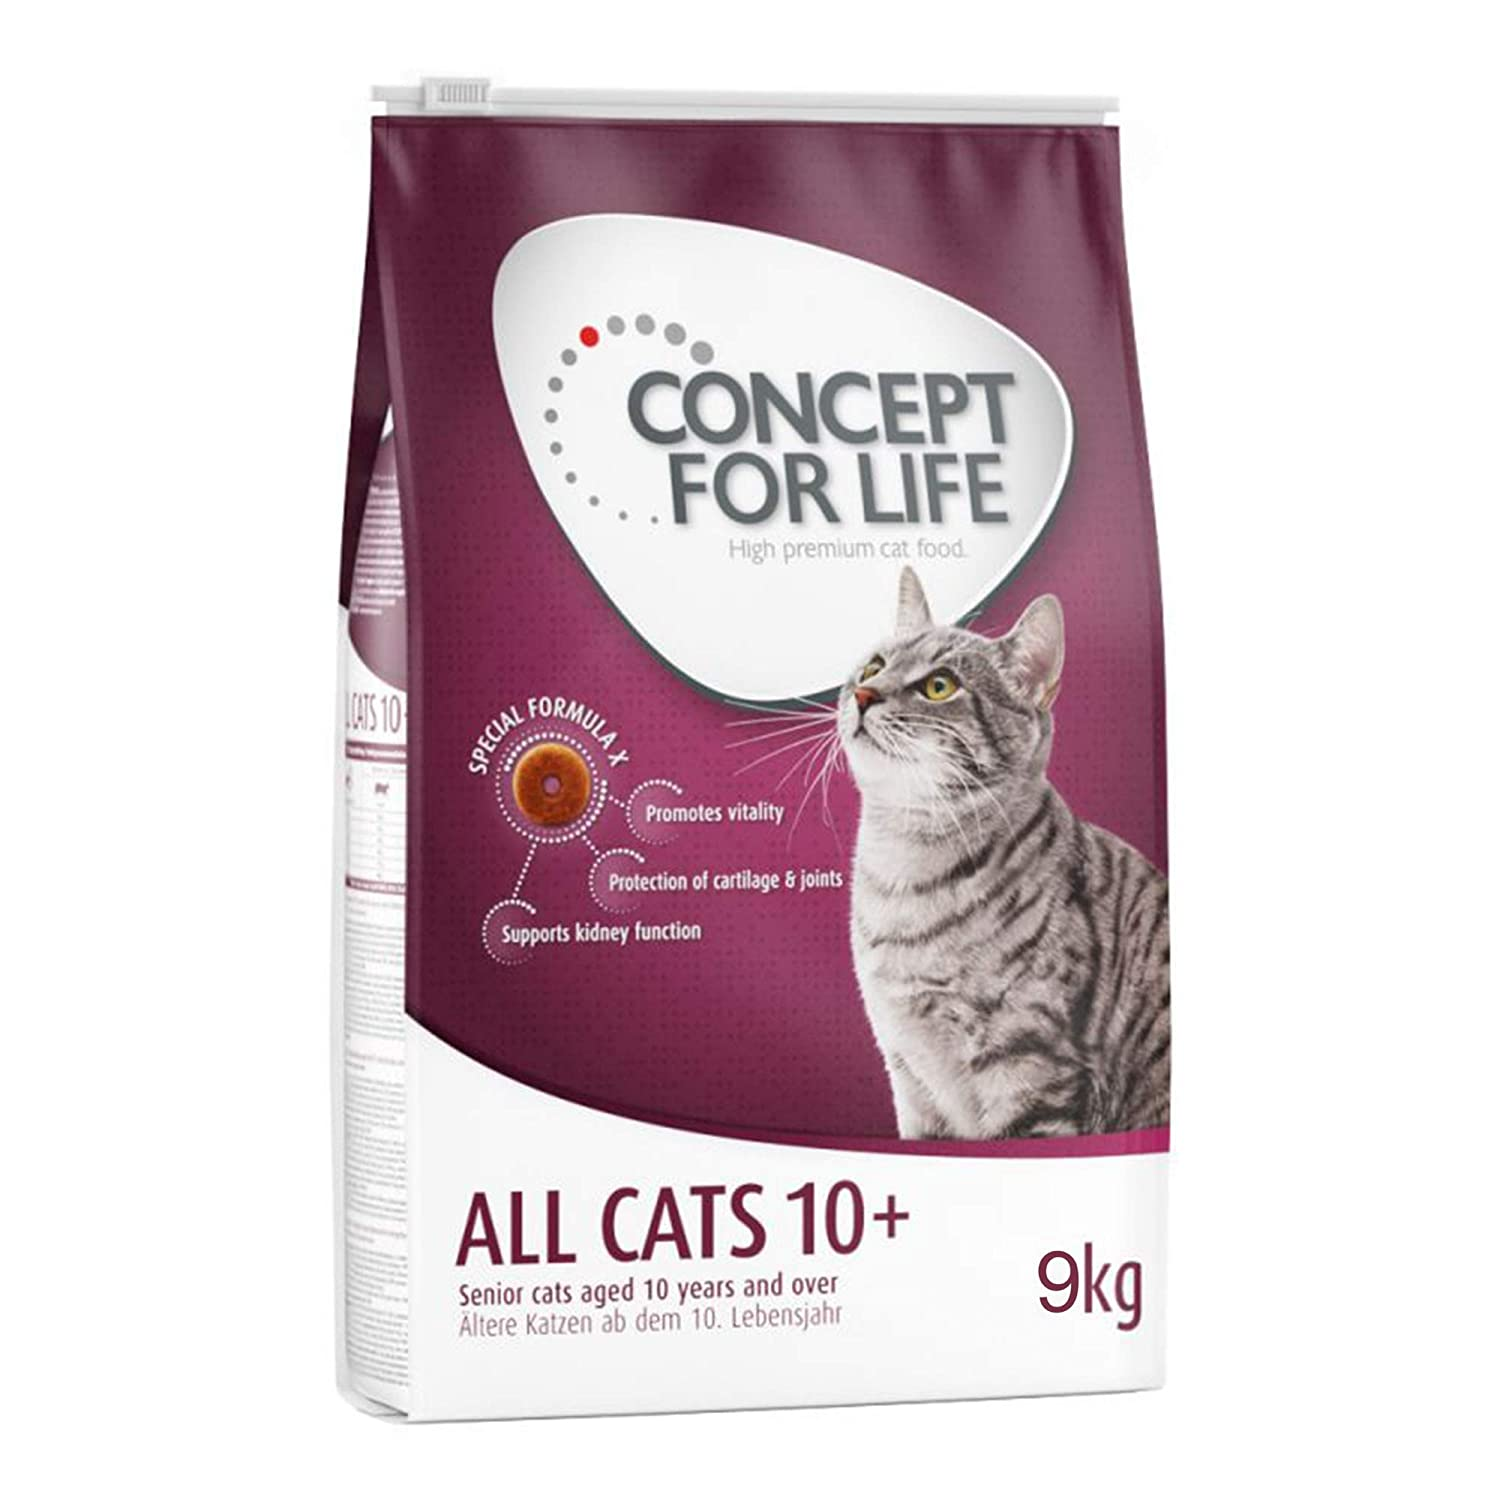 Concept for Life All Cats 10+ 9kg